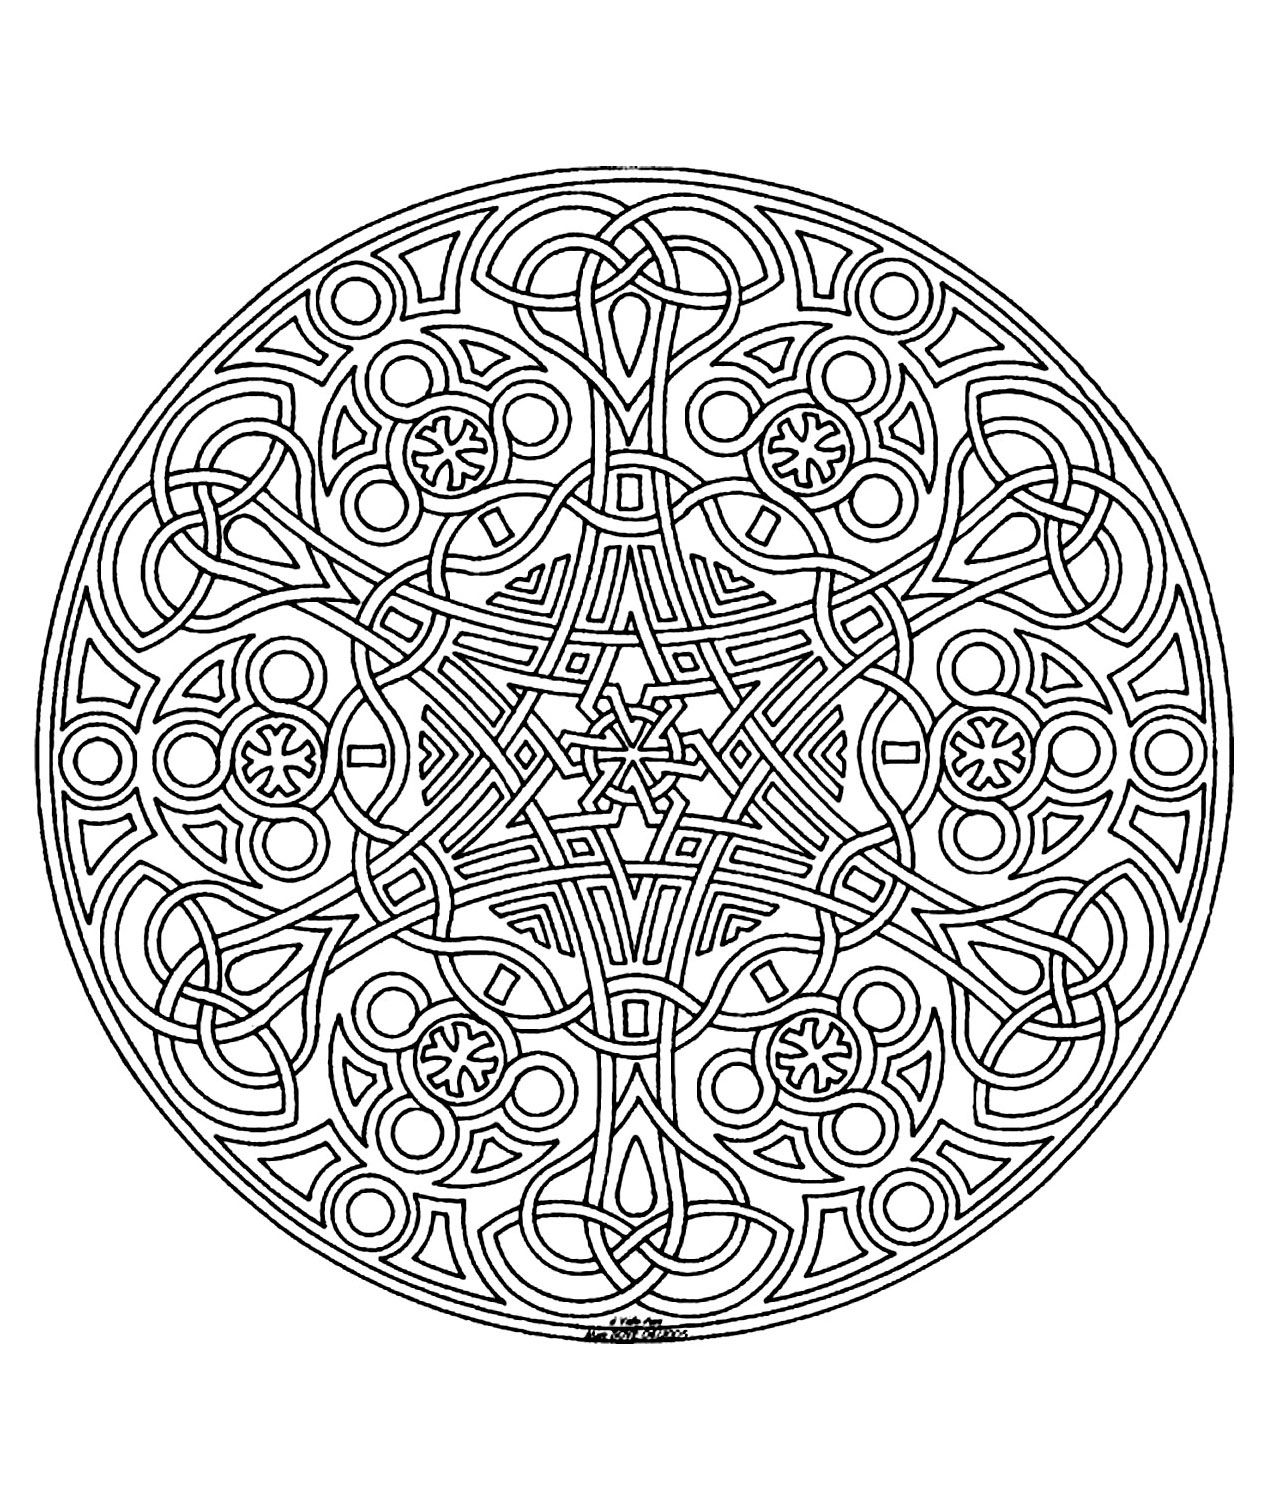 Hard mandala coloring pages for adults - Free Coloring Page Coloring Free Mandala Difficult Adult To